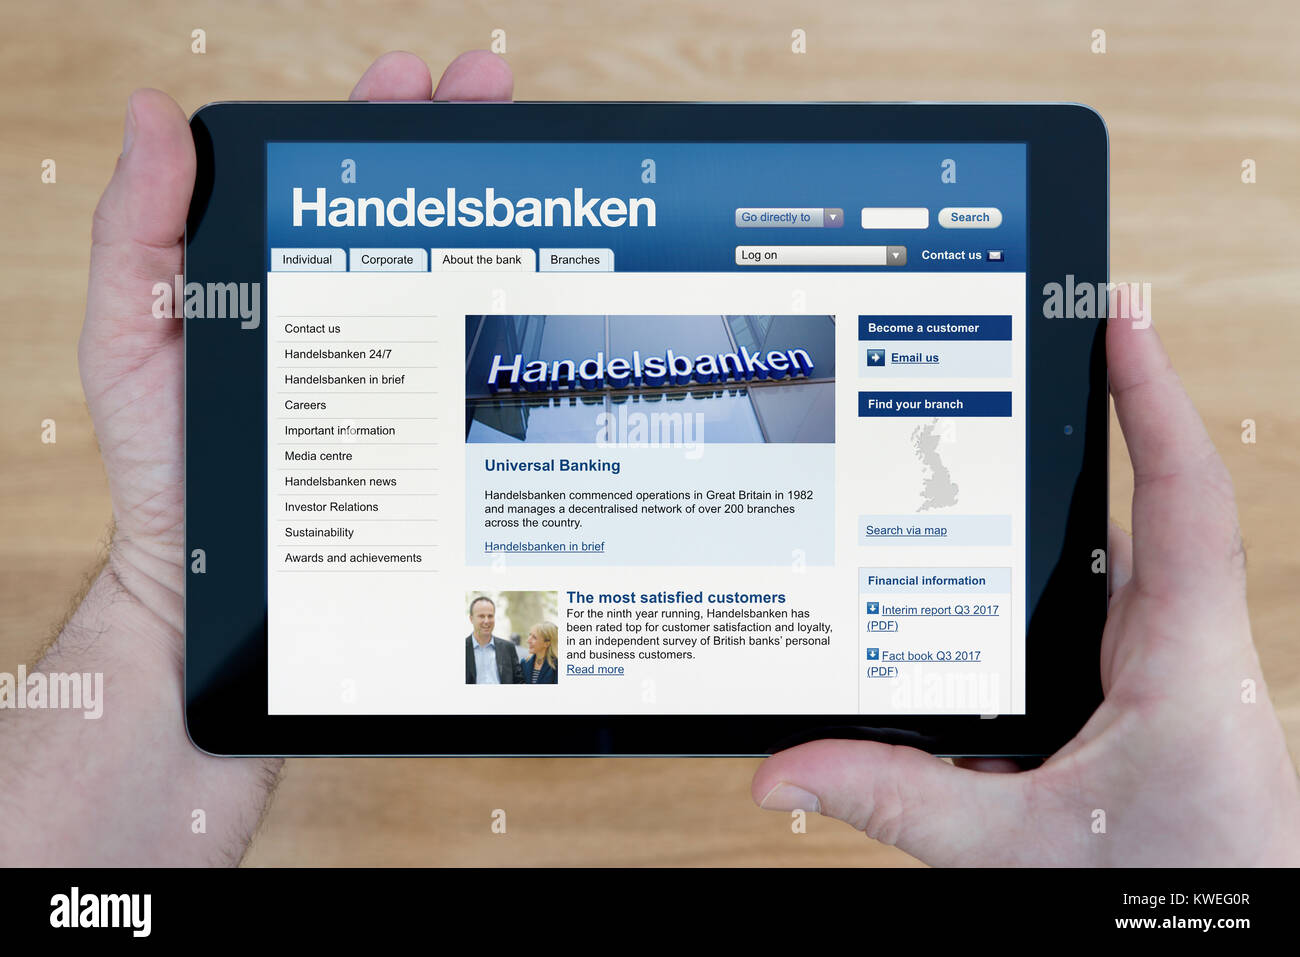 A man looks at the Svenska Handelsbanken website on his iPad tablet device, shot against a wooden table top background - Stock Image